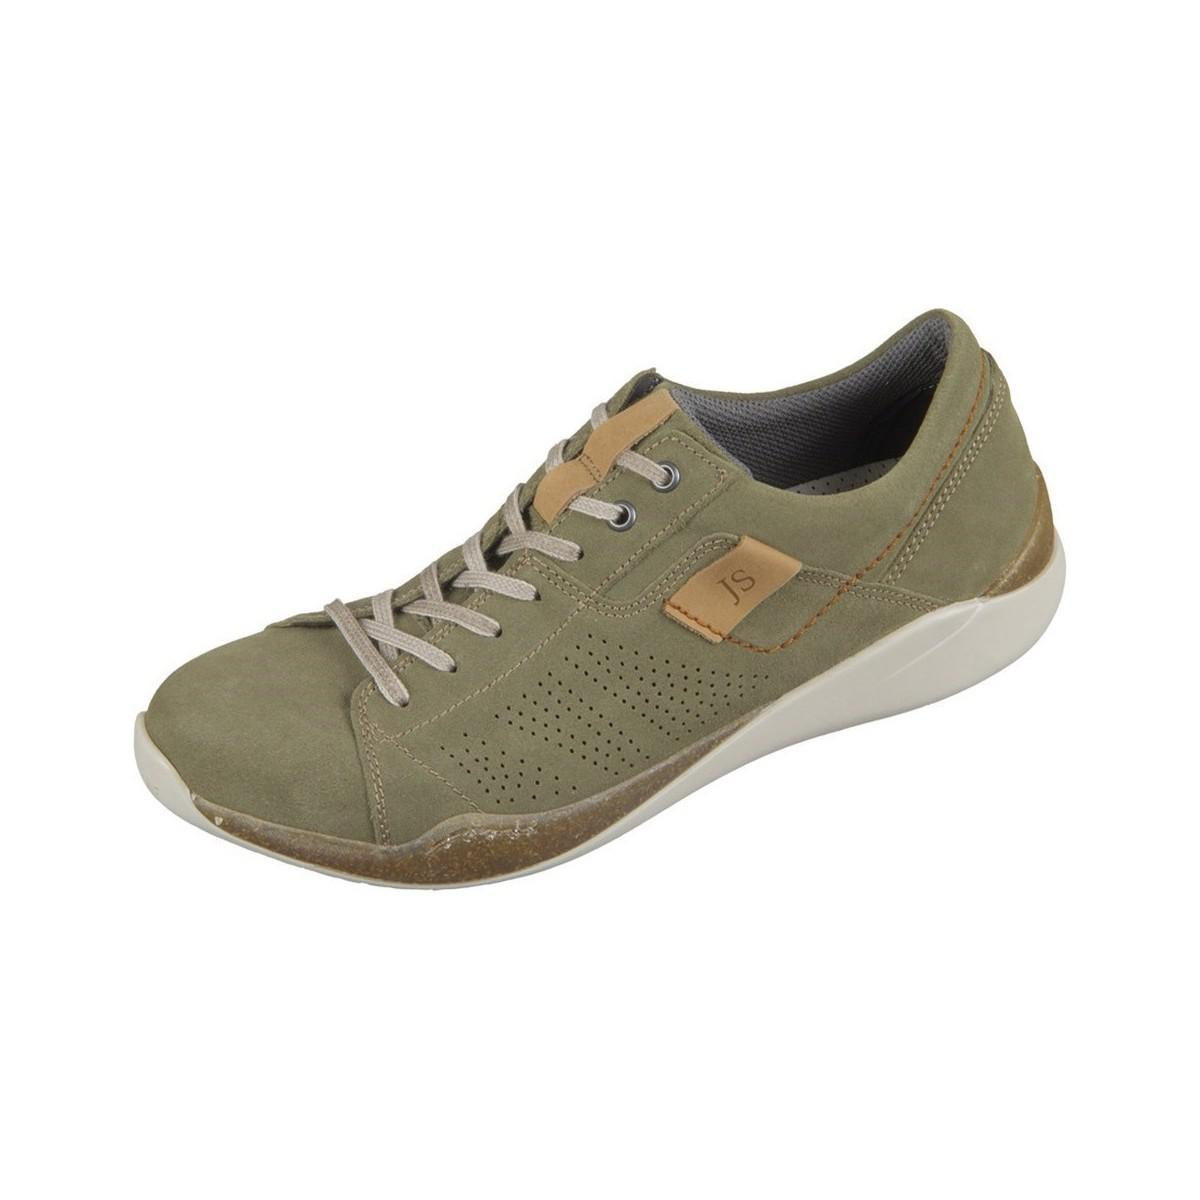 Clearance Recommend Mens Ricardo 05 Trainers Josef Seibel Amazing Price Online From China For Sale u5gdPcEJhN